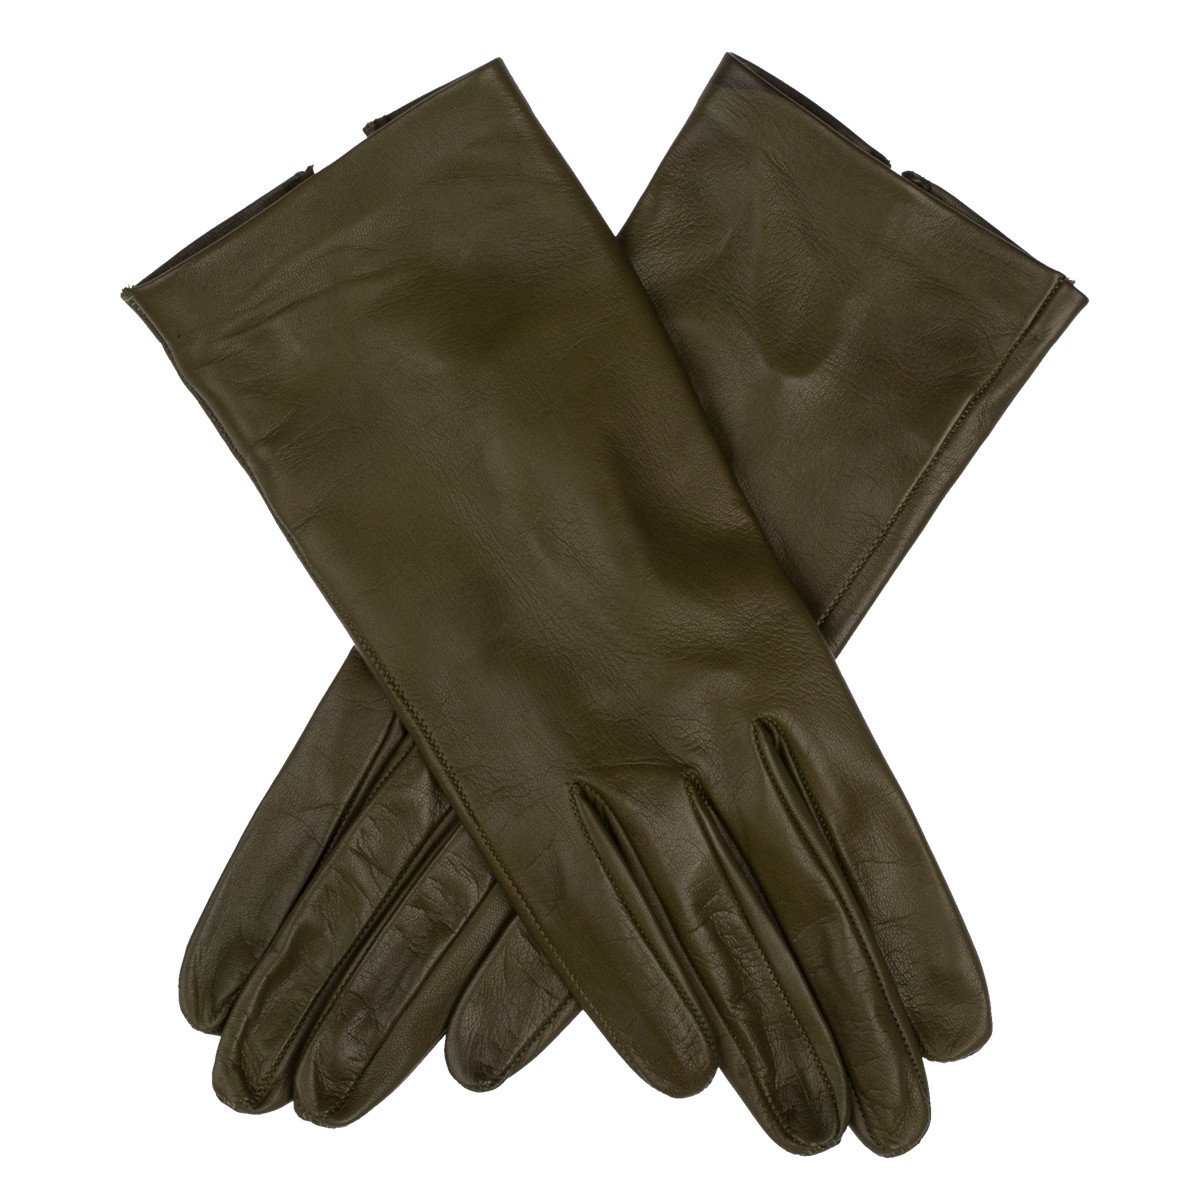 Lundorf Flora Womens Unlined Leather Gloves Cool Nordic Design– Loden Green – Size 7.5 - Medium-Large